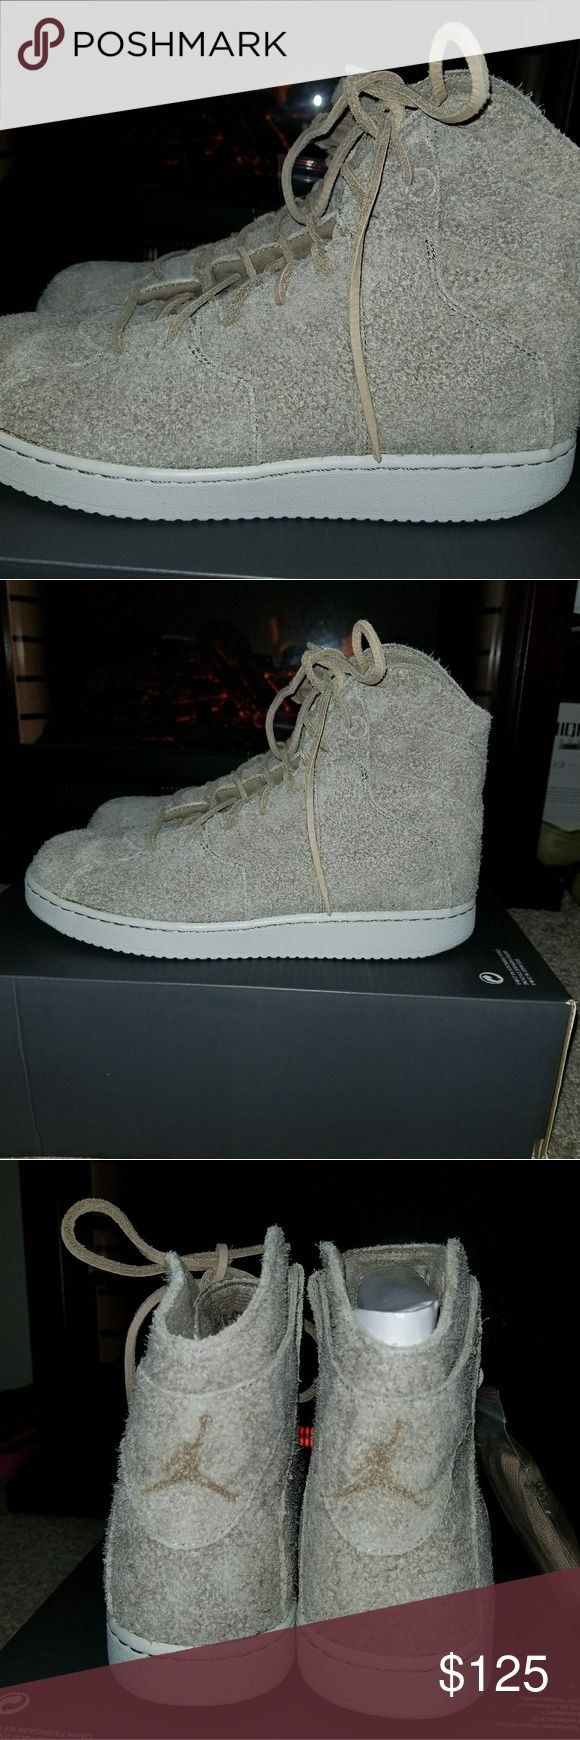 Jordan Westbrook 0.2 Men's Shoes Khaki White New Jordan Westbrook 0.2 Men's Shoes Khaki White 854563-209New- this item was selling brand new what the box was damaged in shipment you would get a half a box in the mail with no top Air Jordan Shoes Athletic Shoes